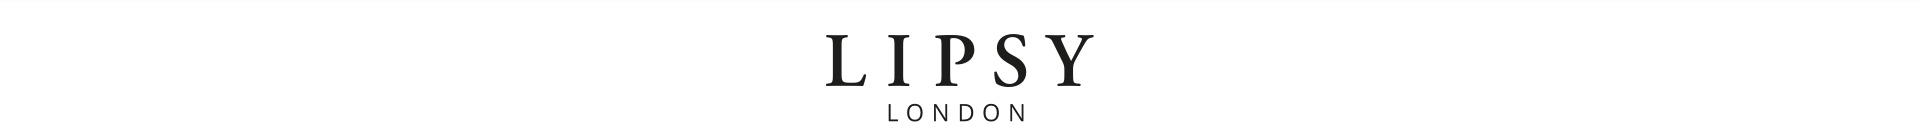 Lipsy London Logo